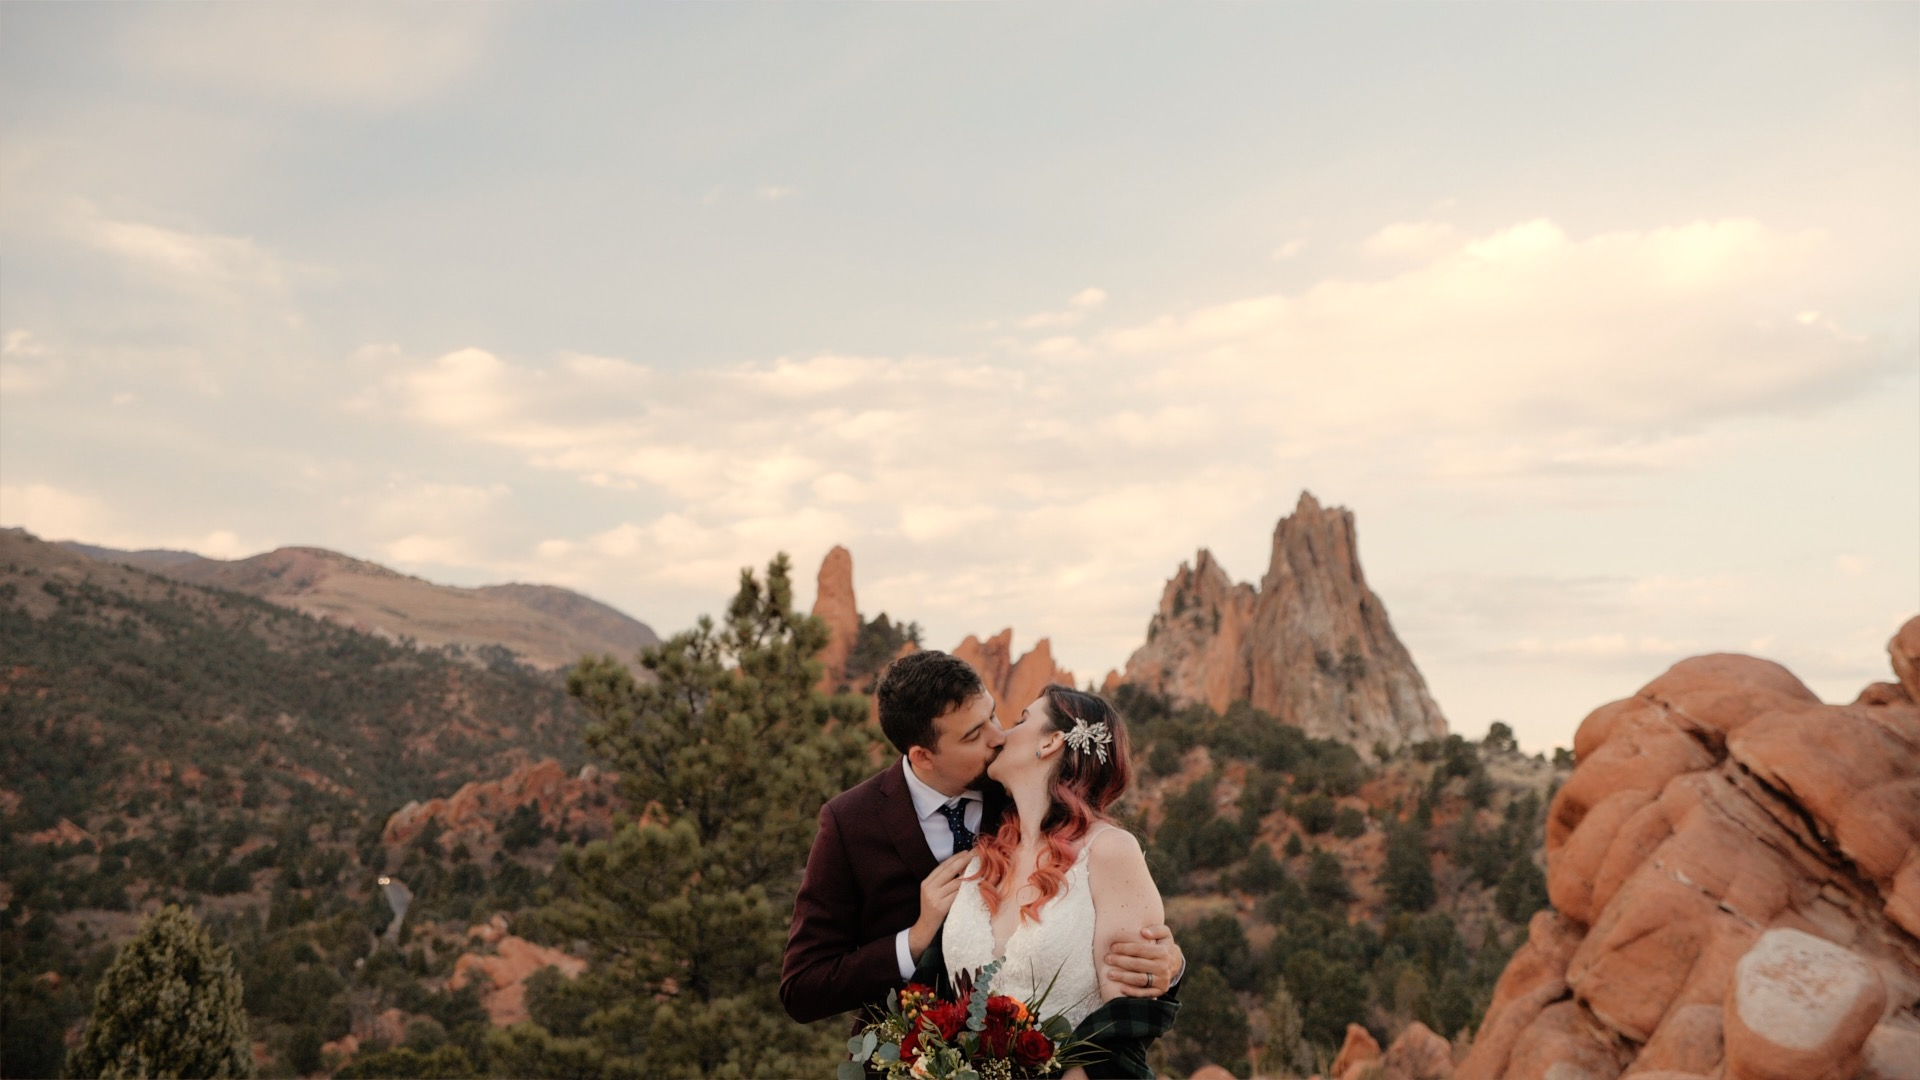 Kaylee + Cody | Colorado Springs, Colorado | Garden of the Gods